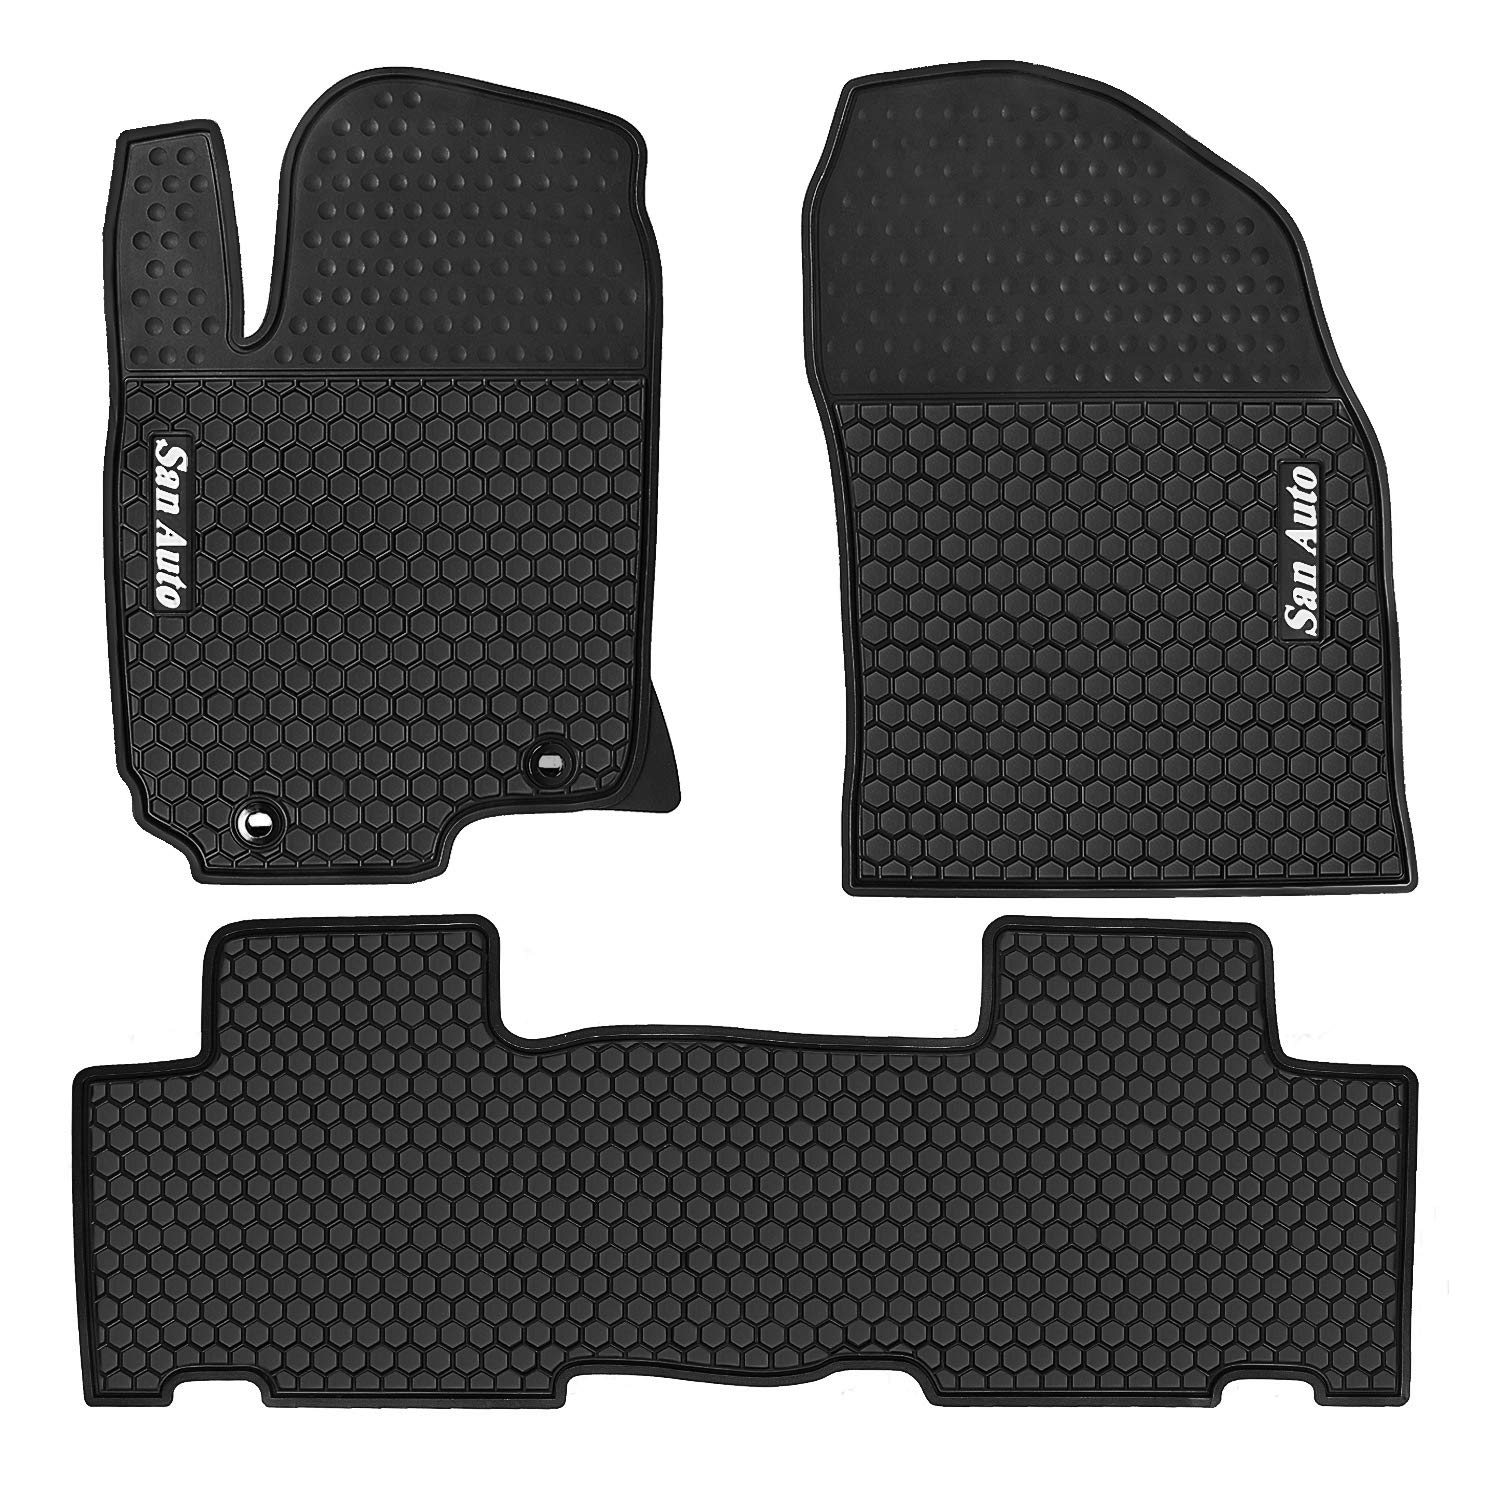 HD-Mart Car Rubber Floor Mat for Honda Civic 10th Generation 2016-2017-2018-2019 Custom Fit Black /& Navy Blue Auto Liner Mats All Weather Heavy Duty /& Odorless